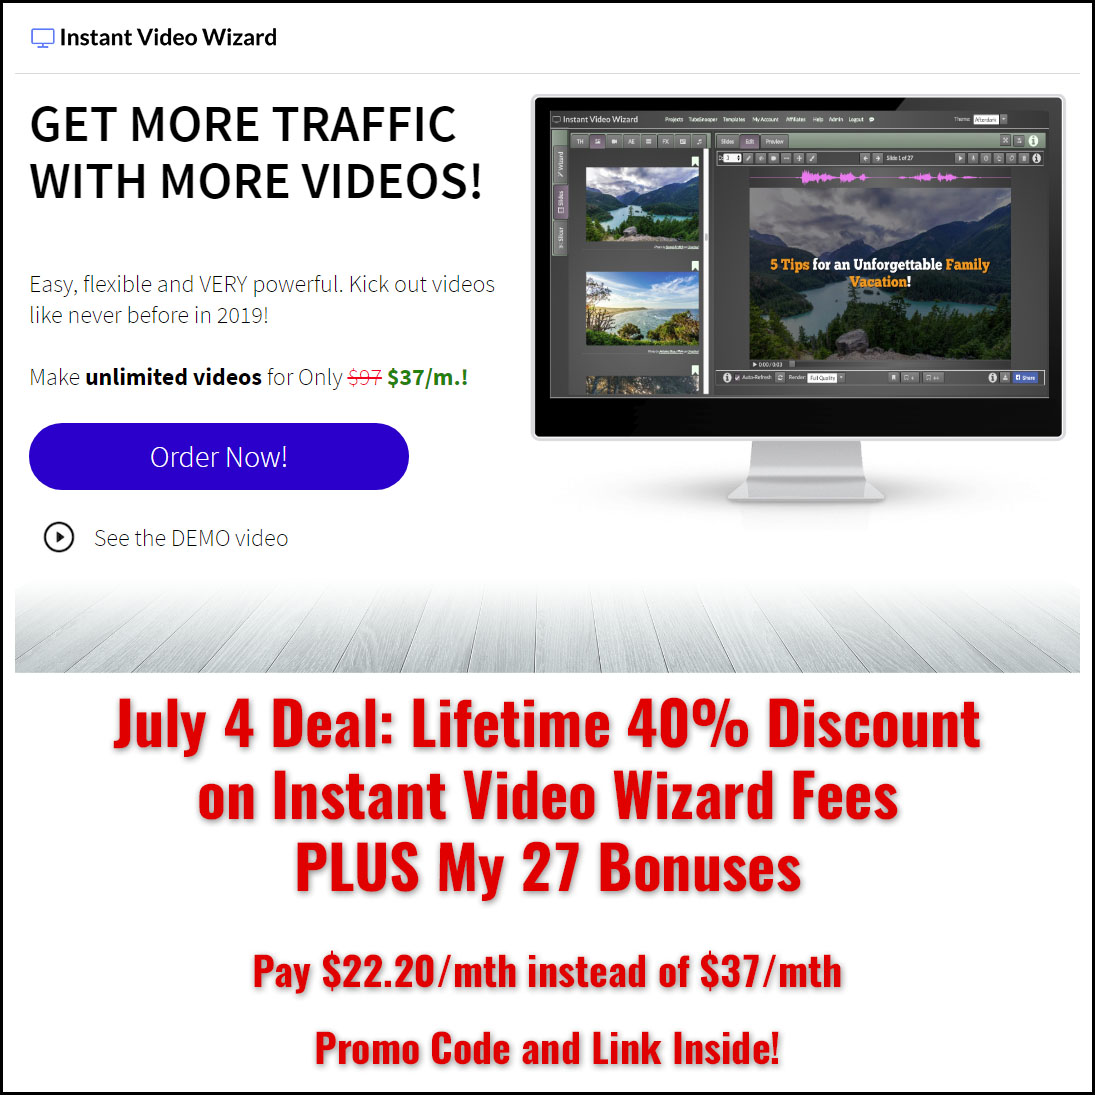 Instant Video Wizard July 4 Deal